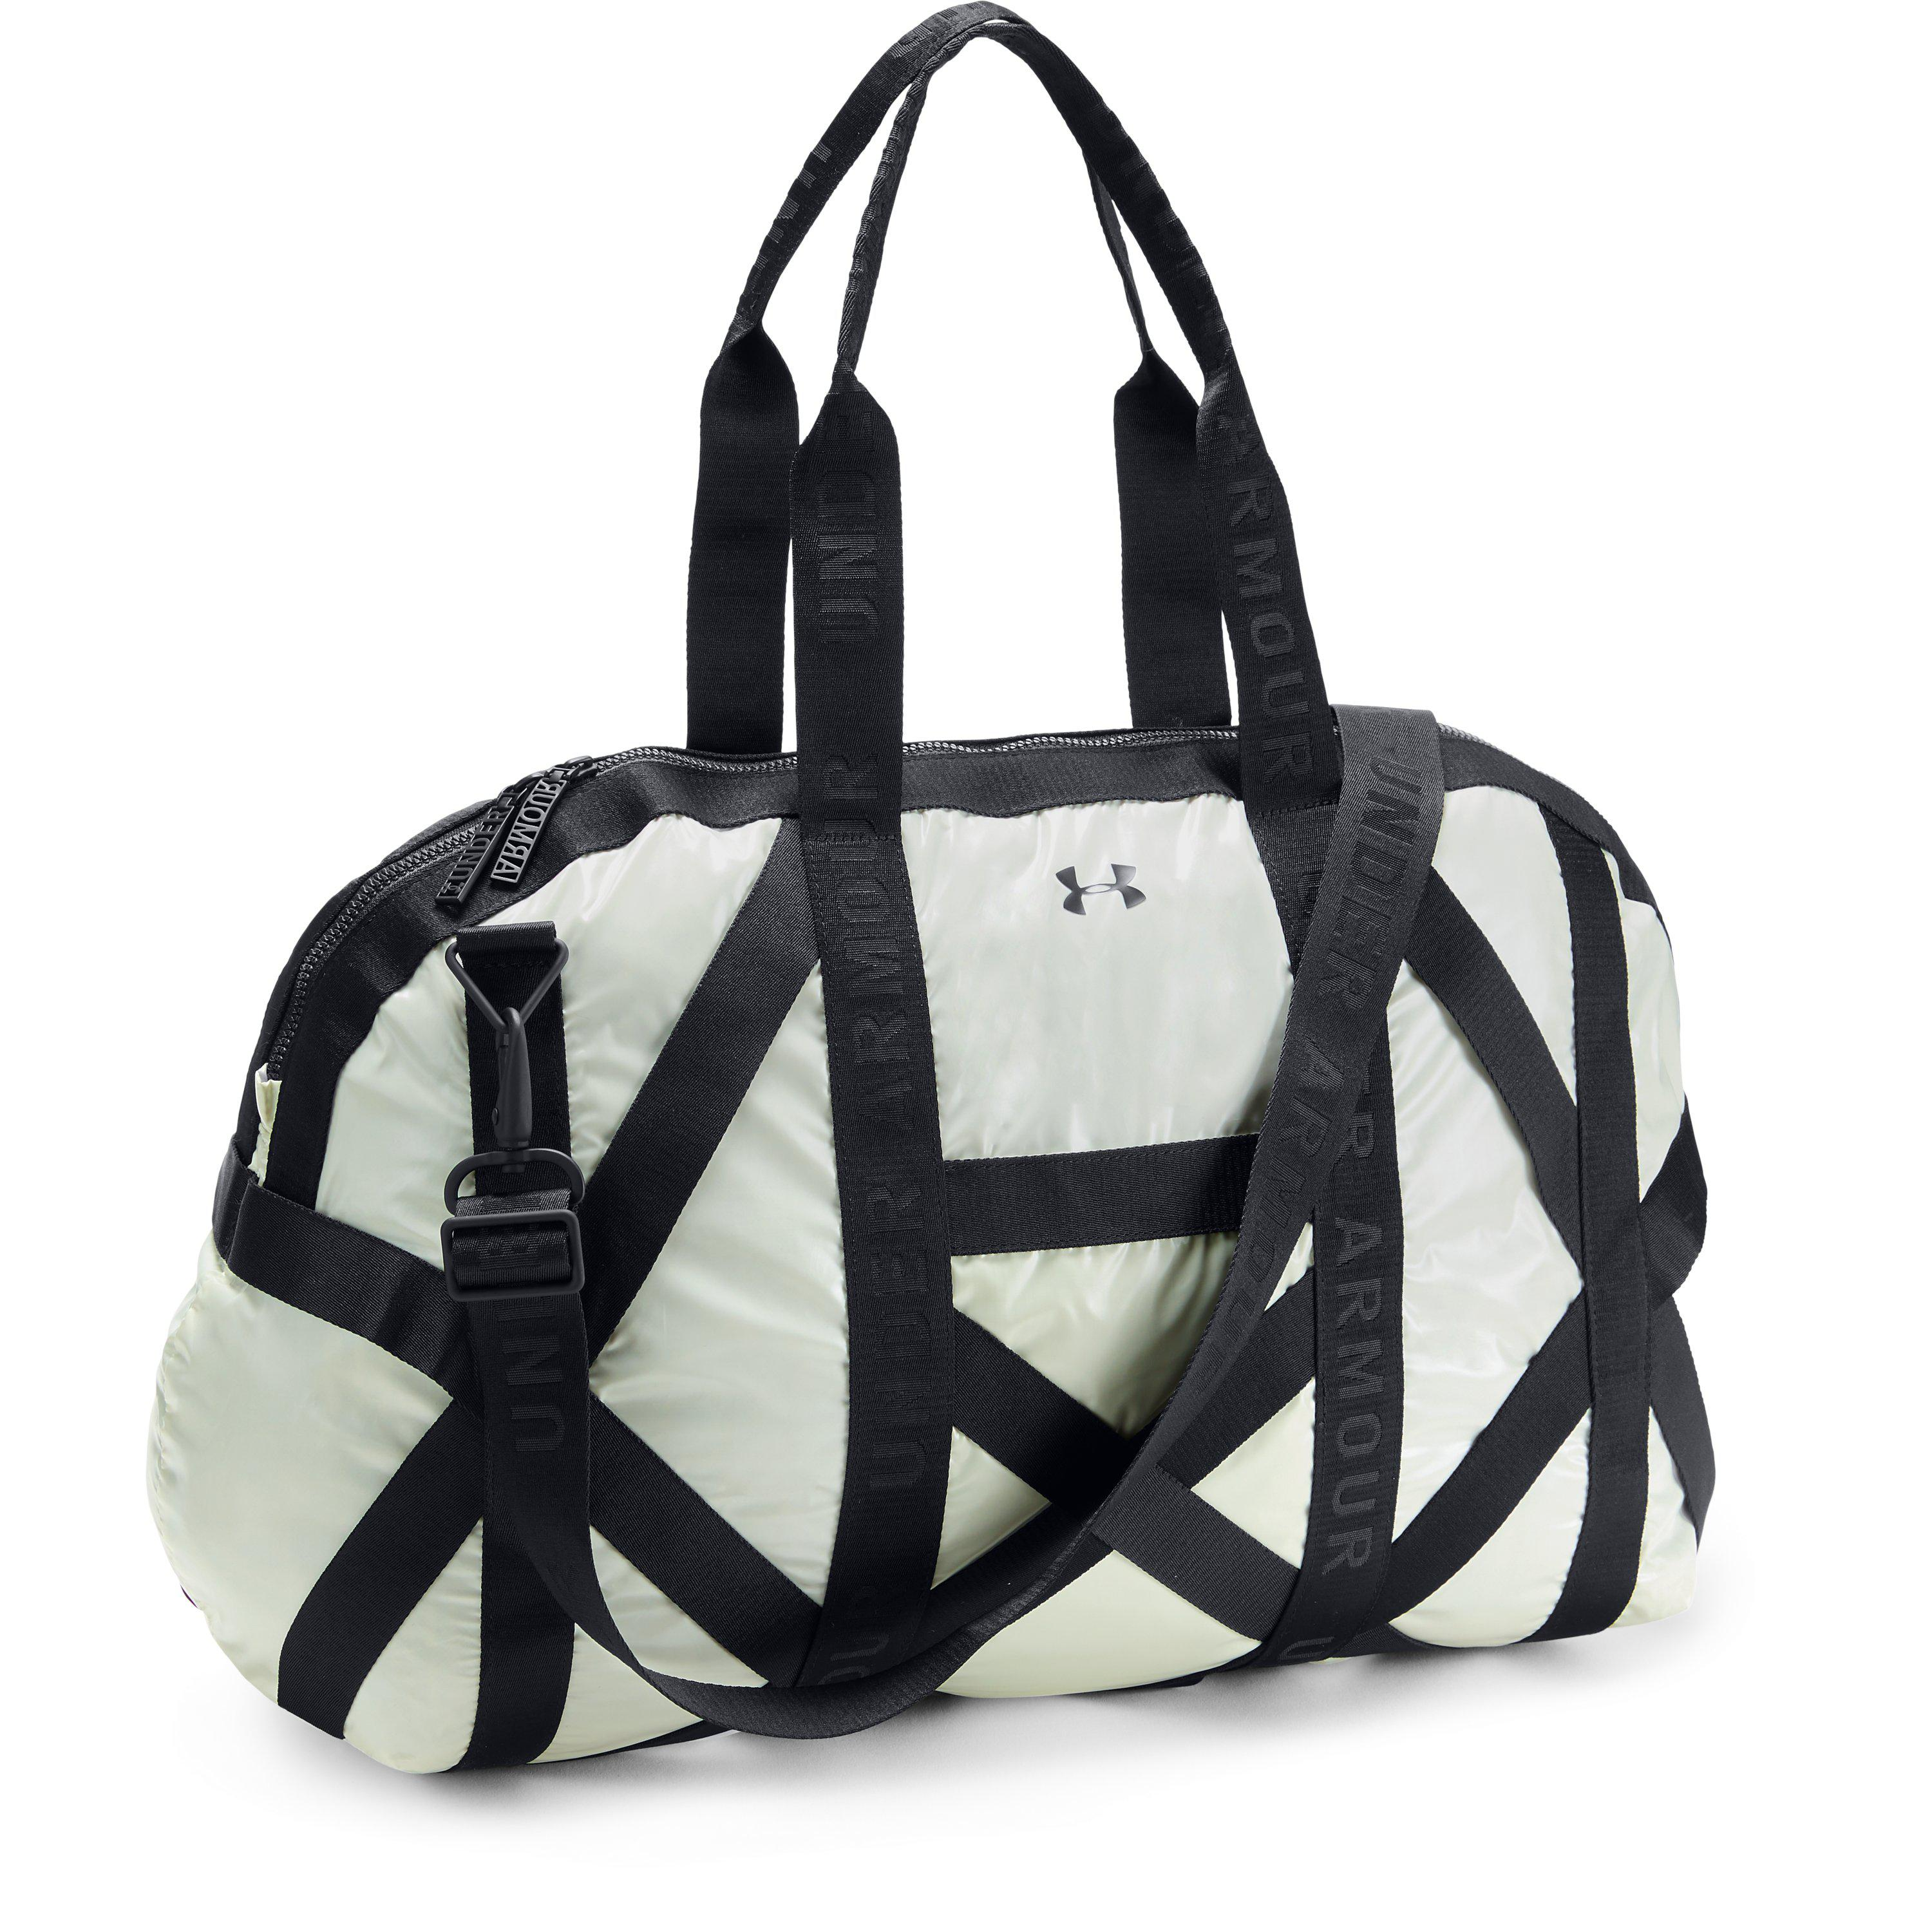 6306be3d244 Under Armour Women's Ua Beltway Gym Bag in Black - Lyst